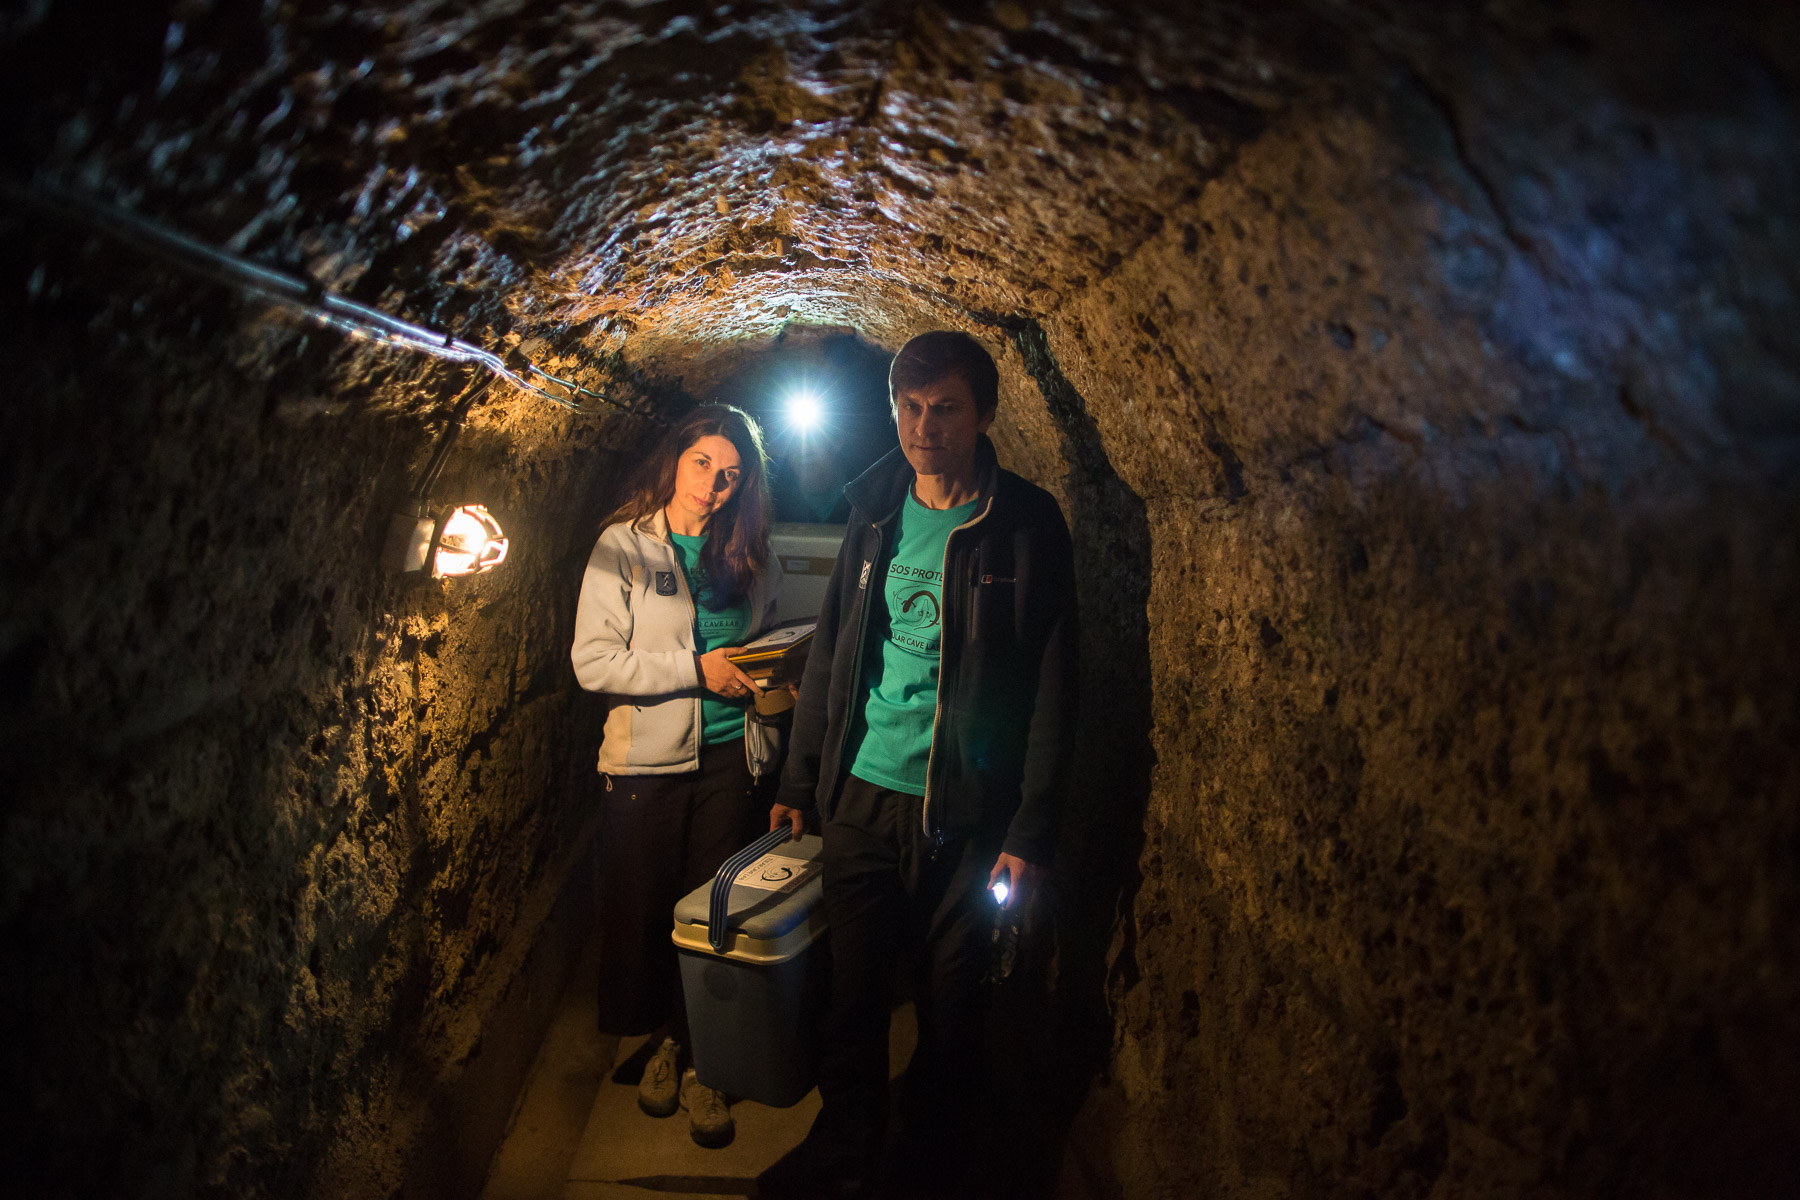 Gregor Aljančič and Magdalena Năpăruş-Aljančič exit Tular Cave Laboratory by way of a concrete tunnel.